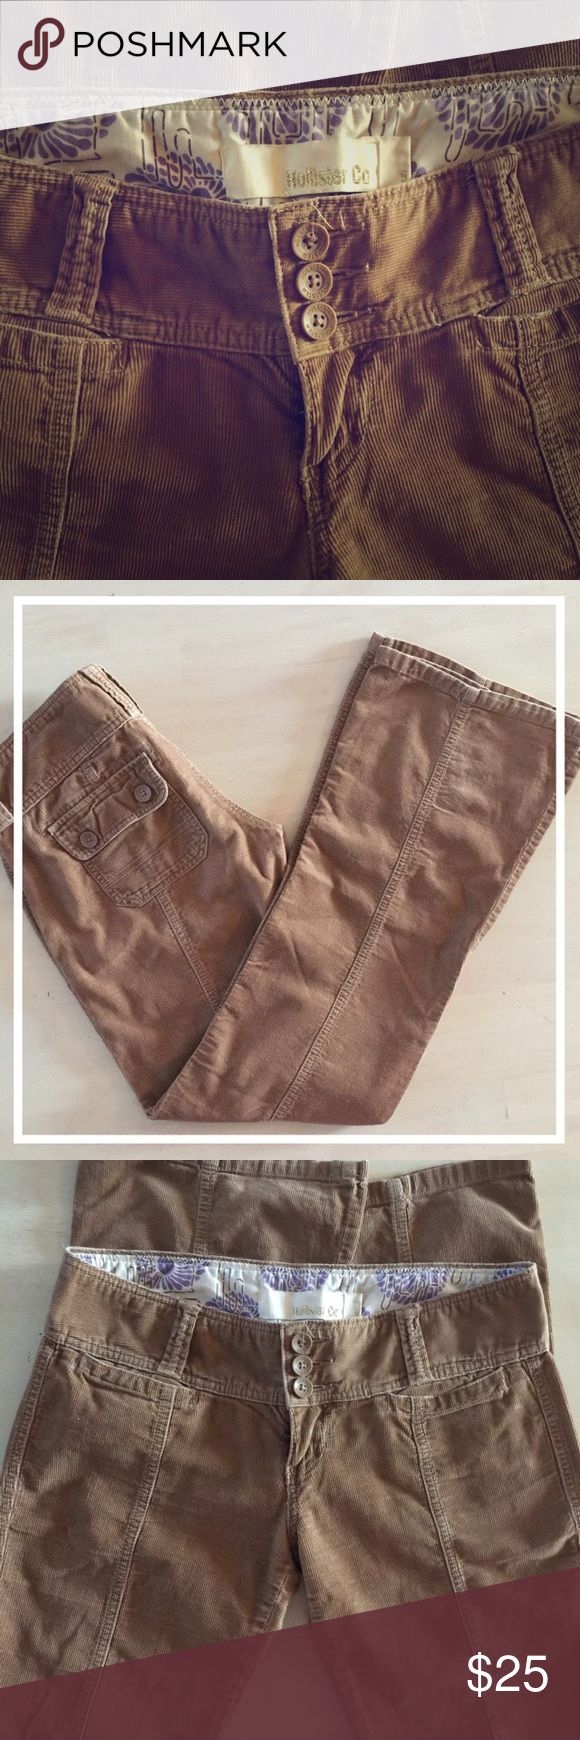 "Hollister Corduroy Flared Low Rise Size 5 #270 Hollister Corduroy Pants Low Rise and Flared. Size 5. Waist 31"" Rise 8"" Inseam 32"" Flare 9.5"". All orders are shipped same or next business day. Bundle to save even more money! Hollister Pants Trousers"